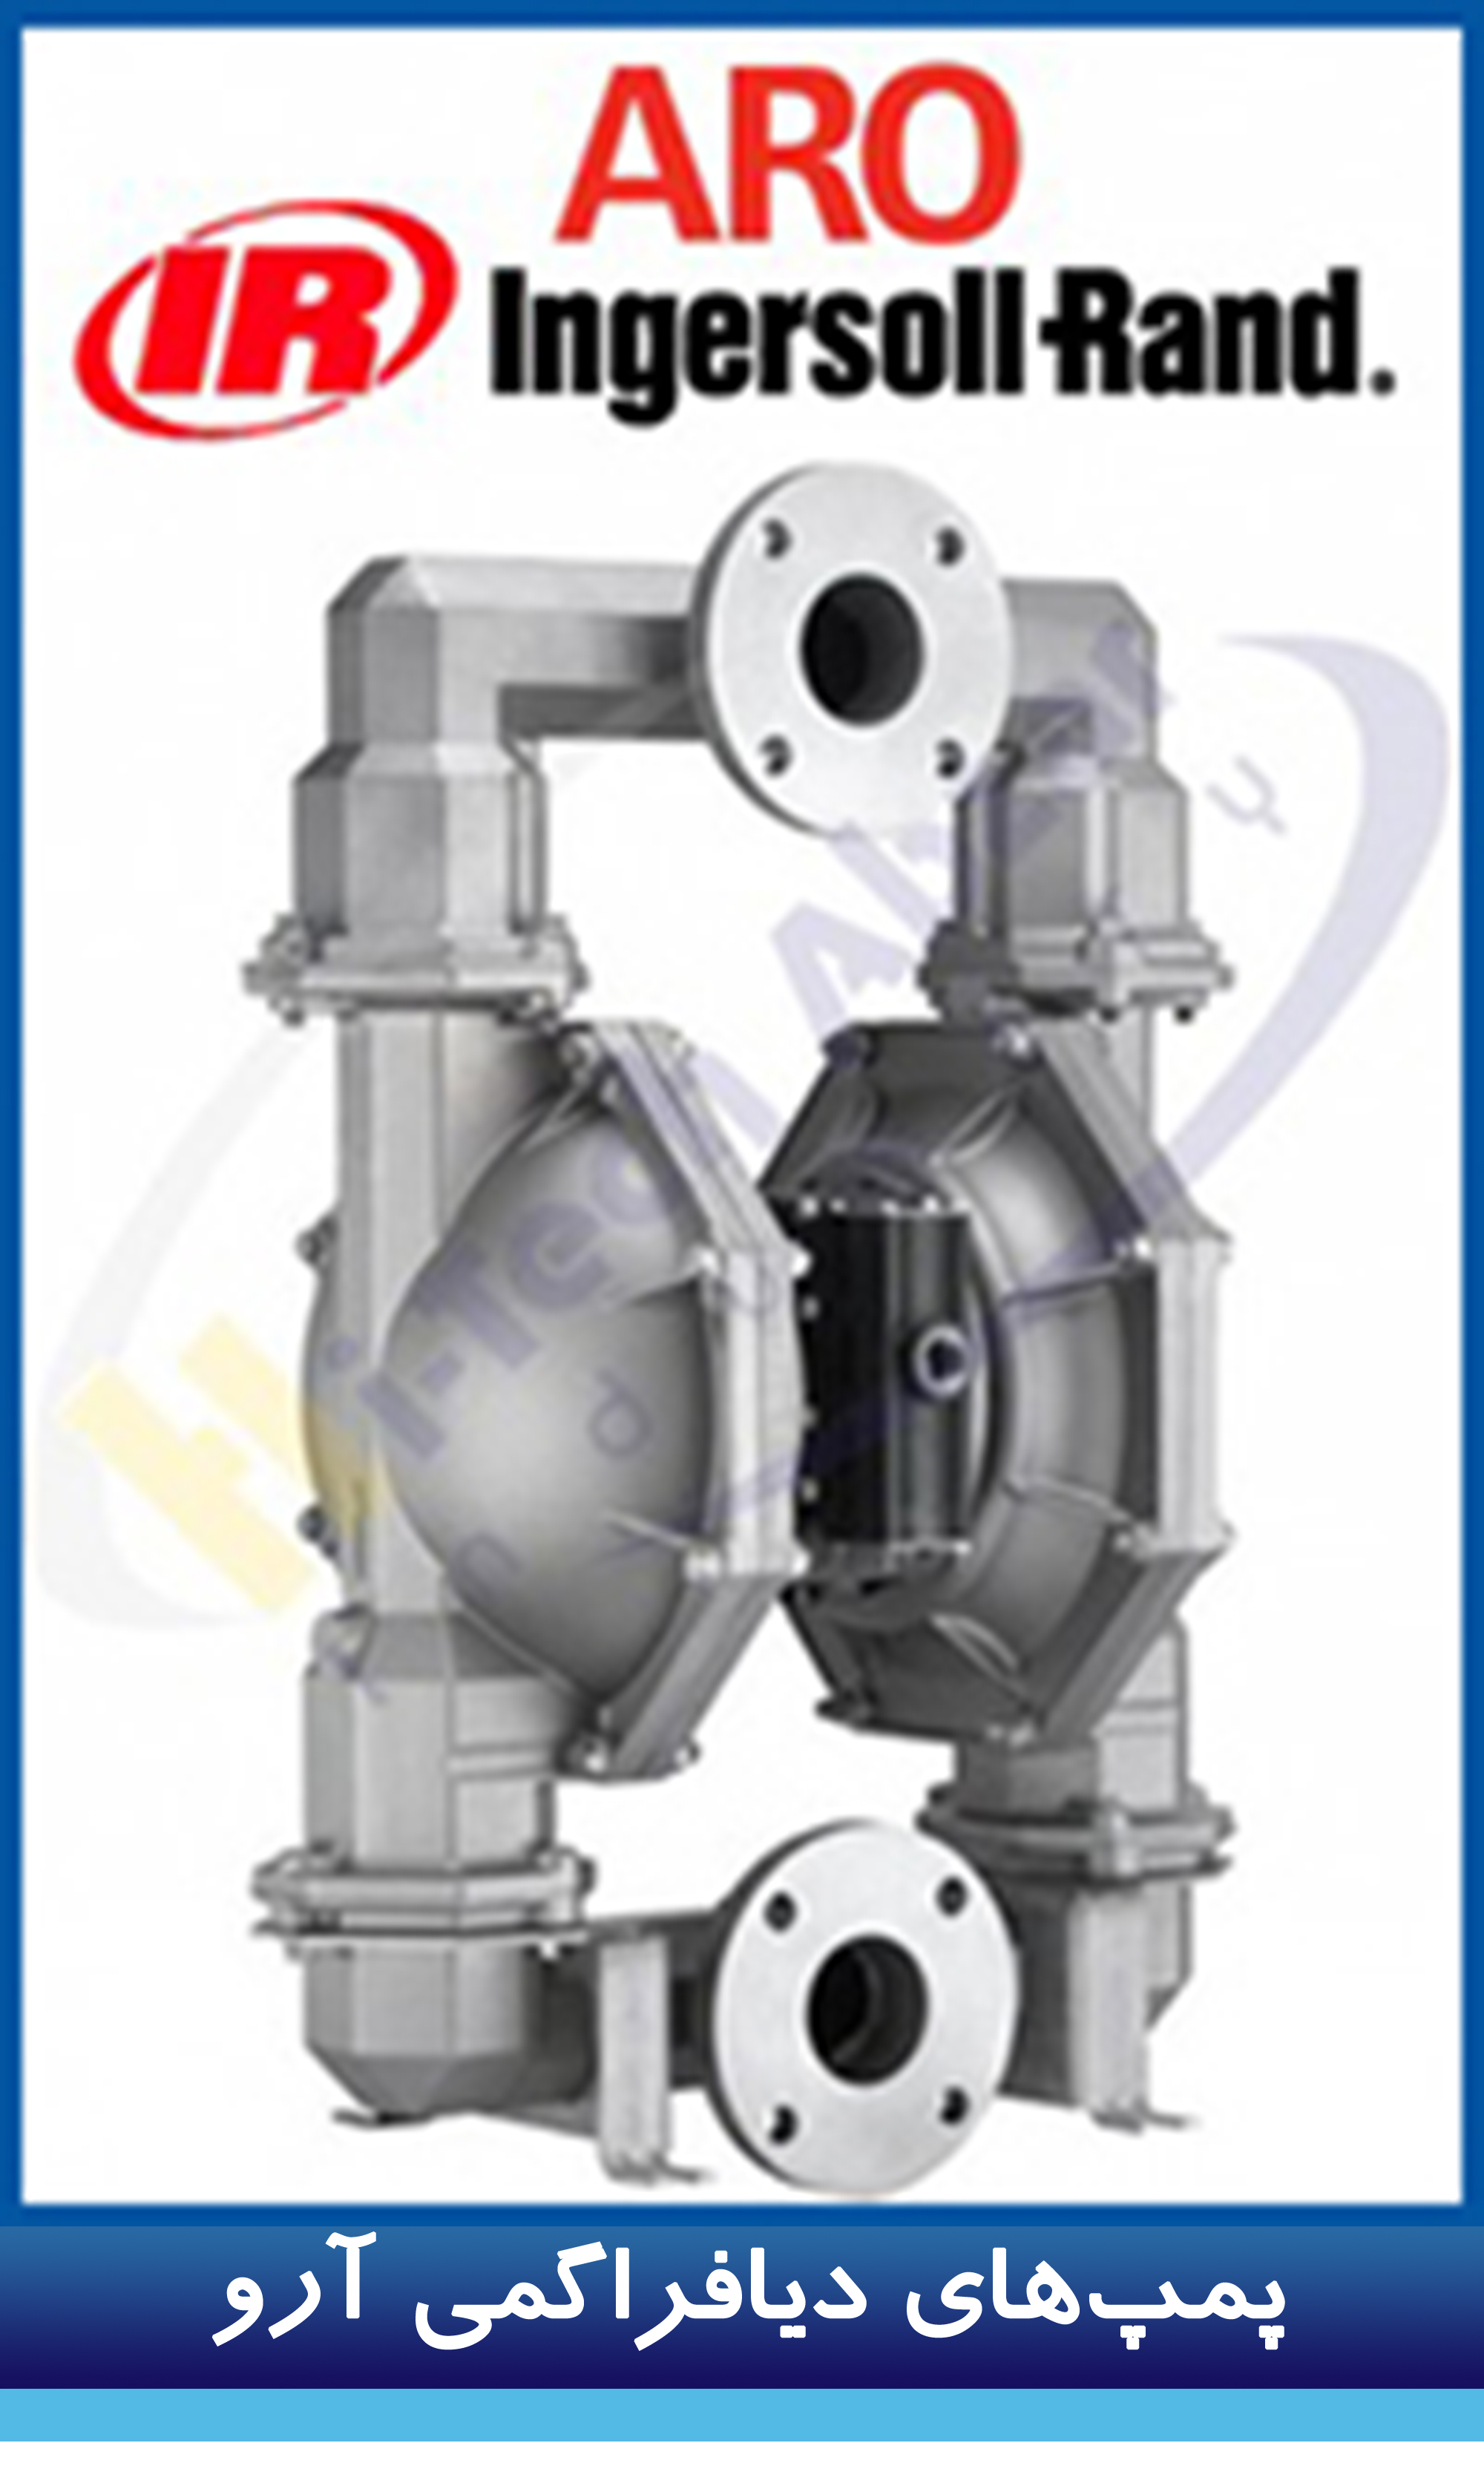 aro_diaphragm_pump_400